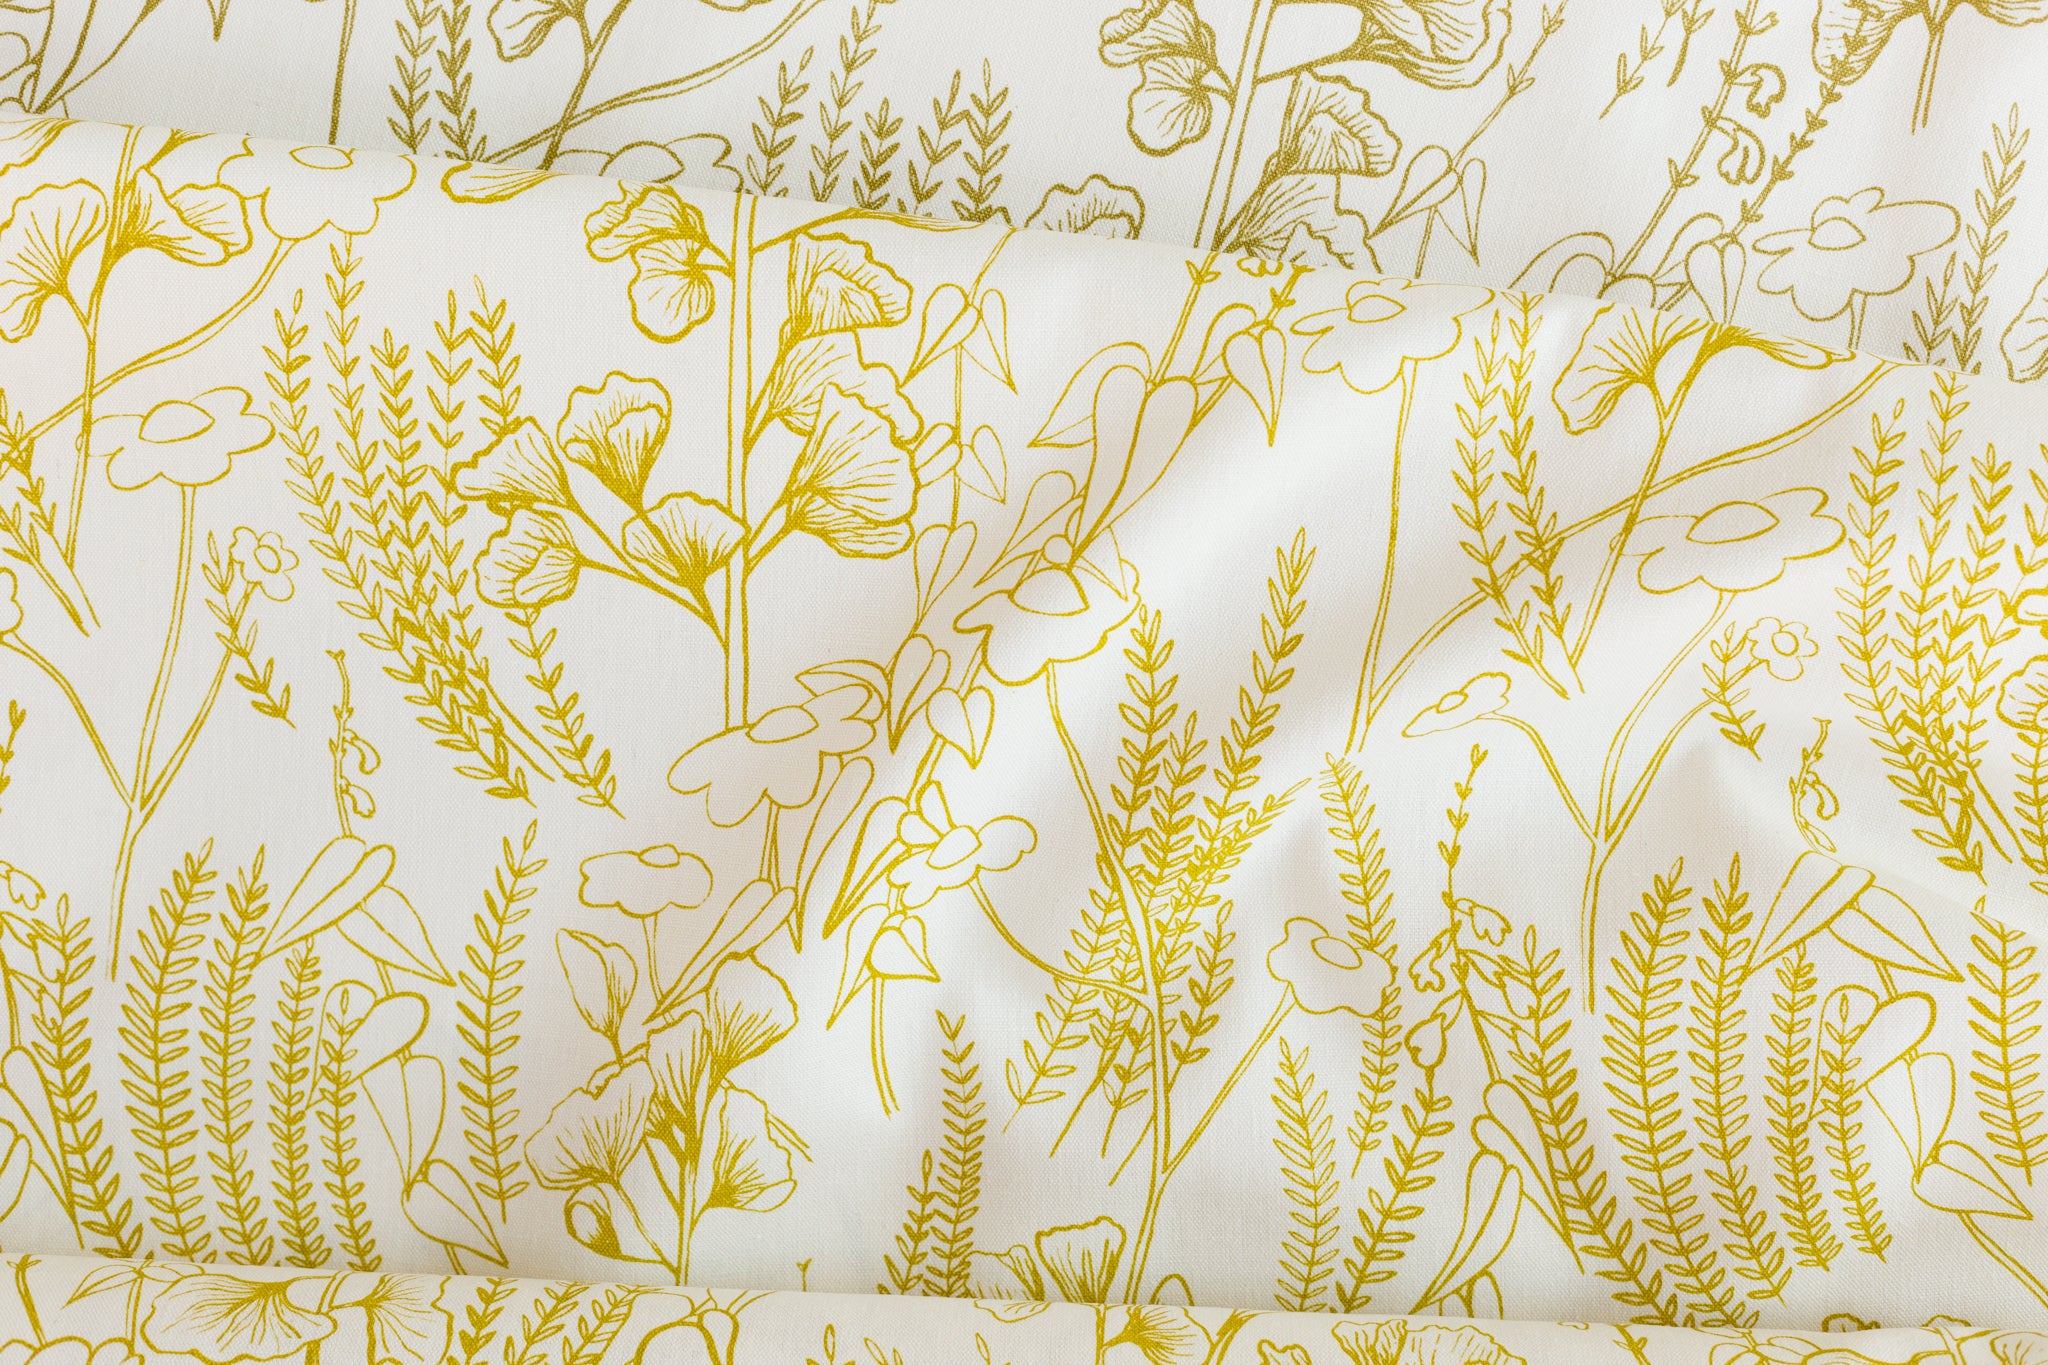 Screen printed fabric yardage with Ginkgo leaves, Mexican sunflowers, and salvia